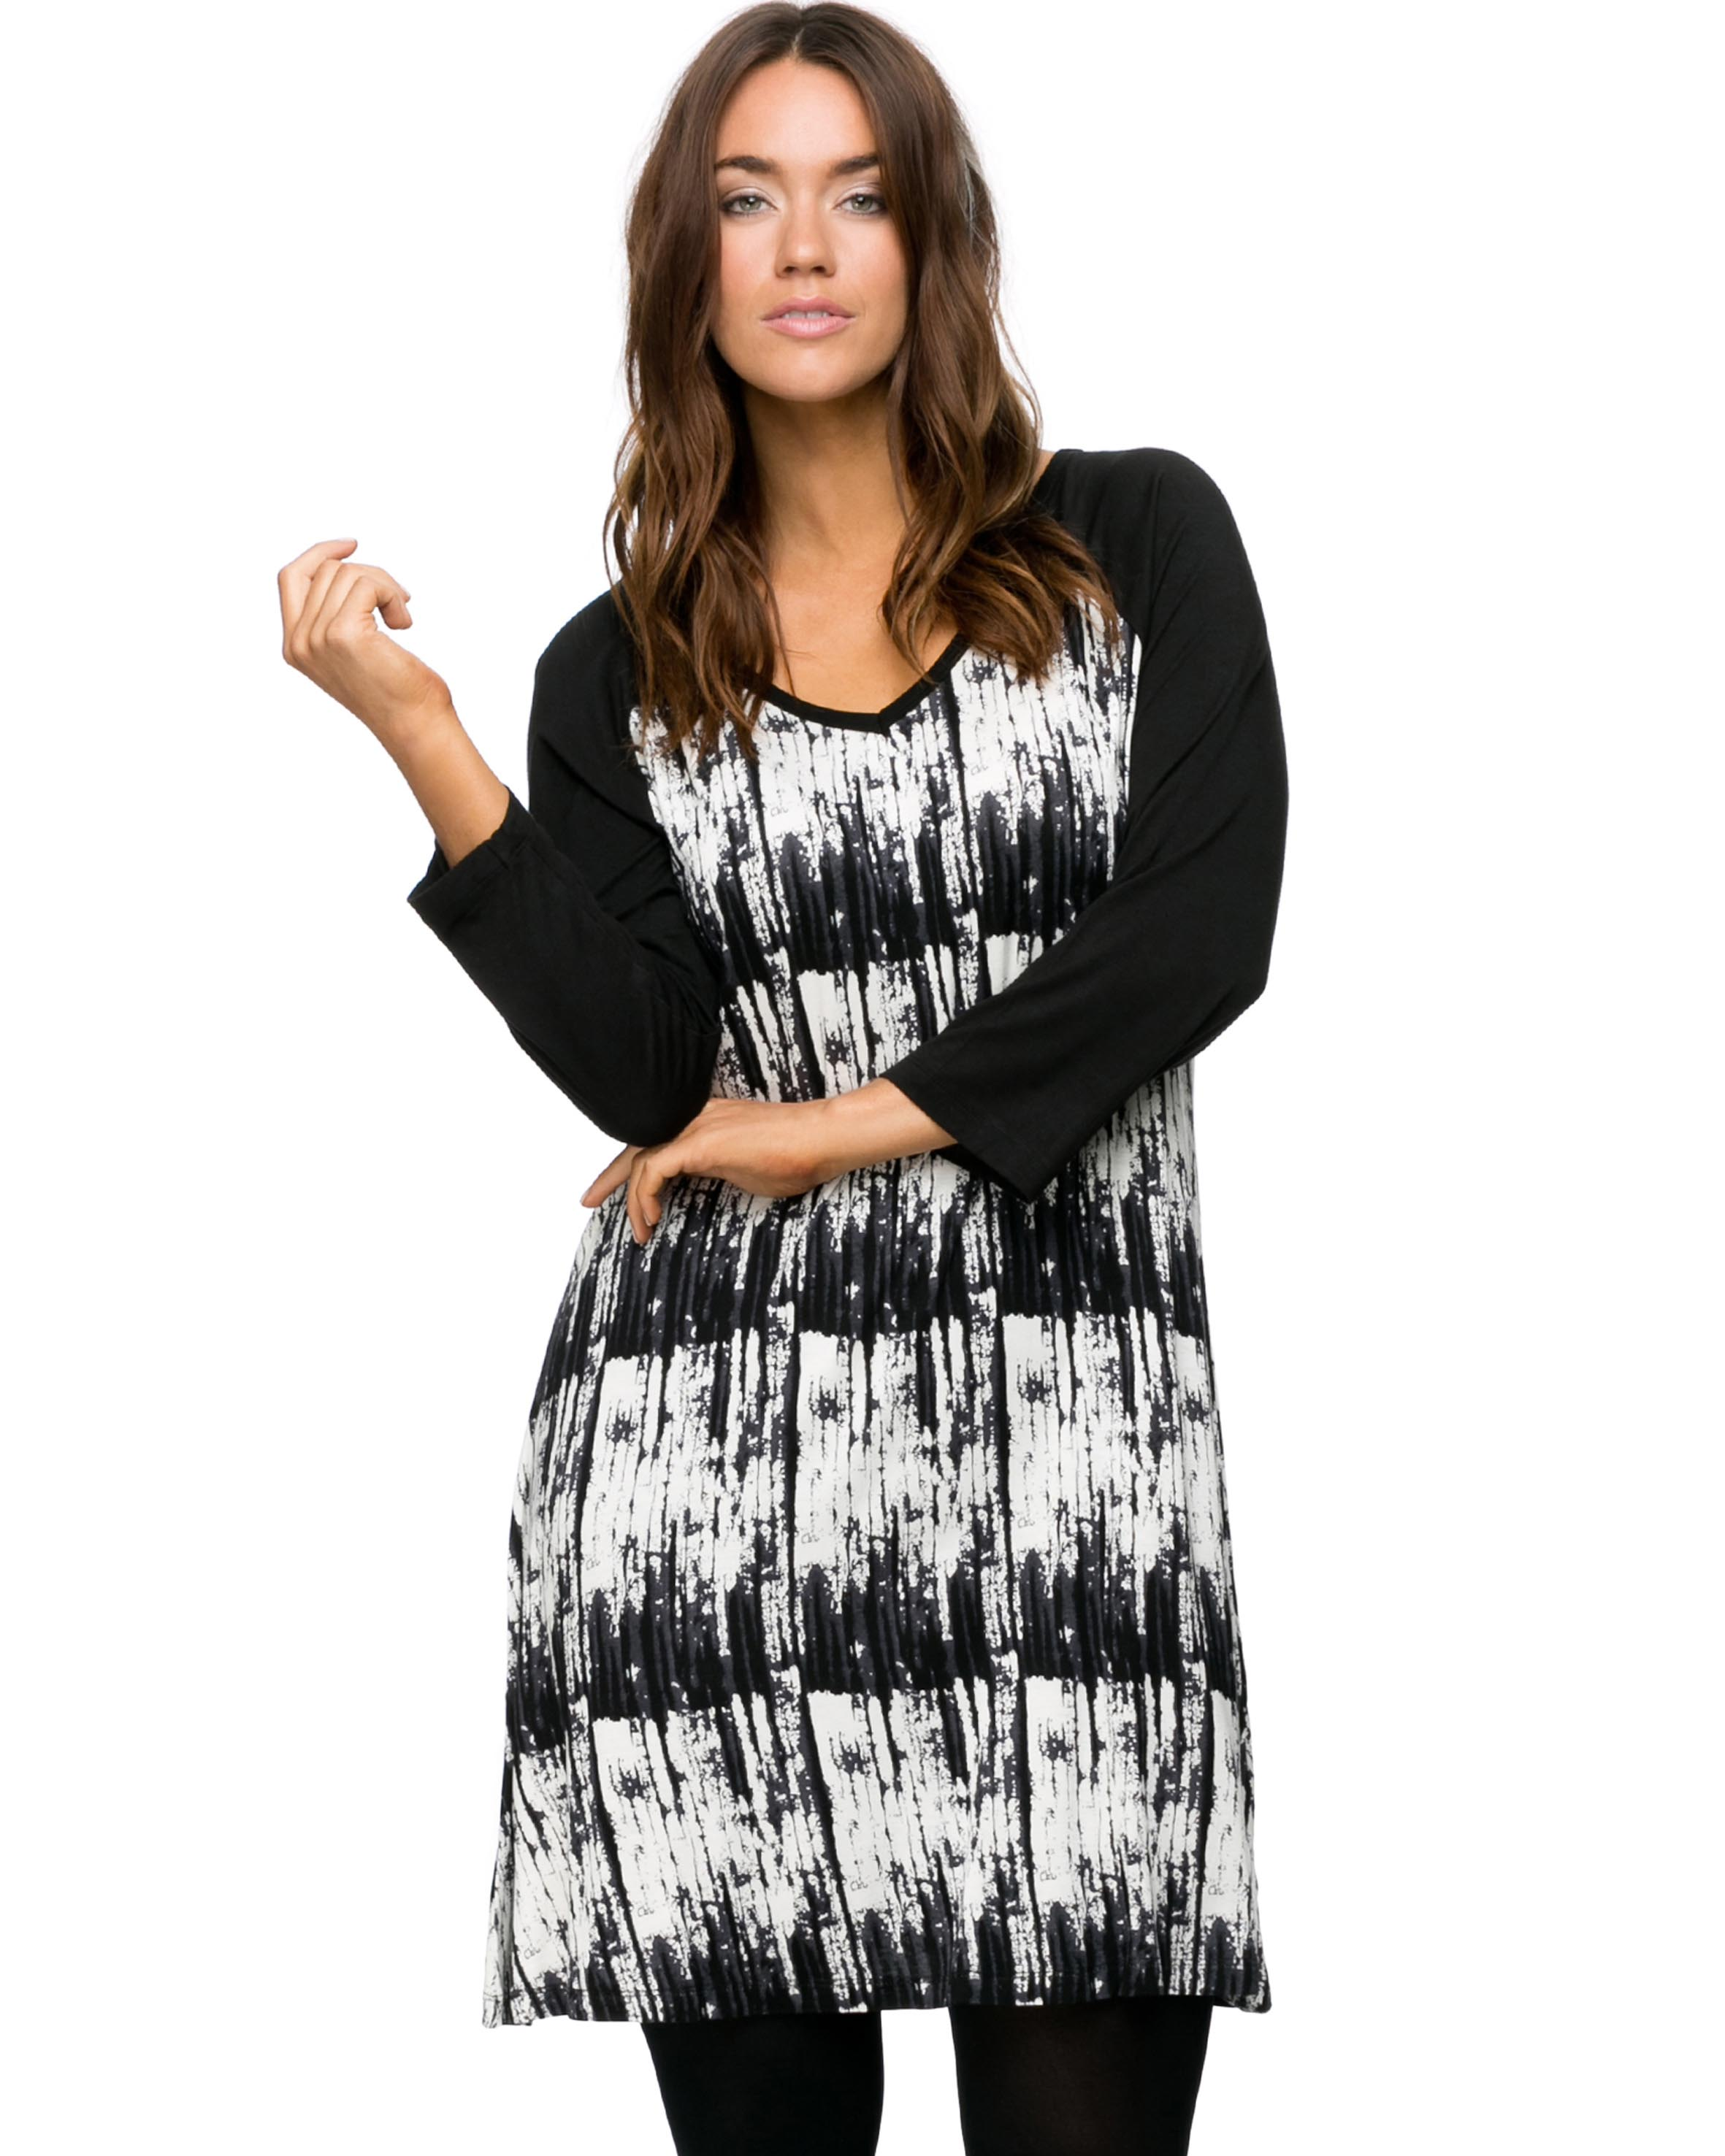 Plus size clothing stores in australia